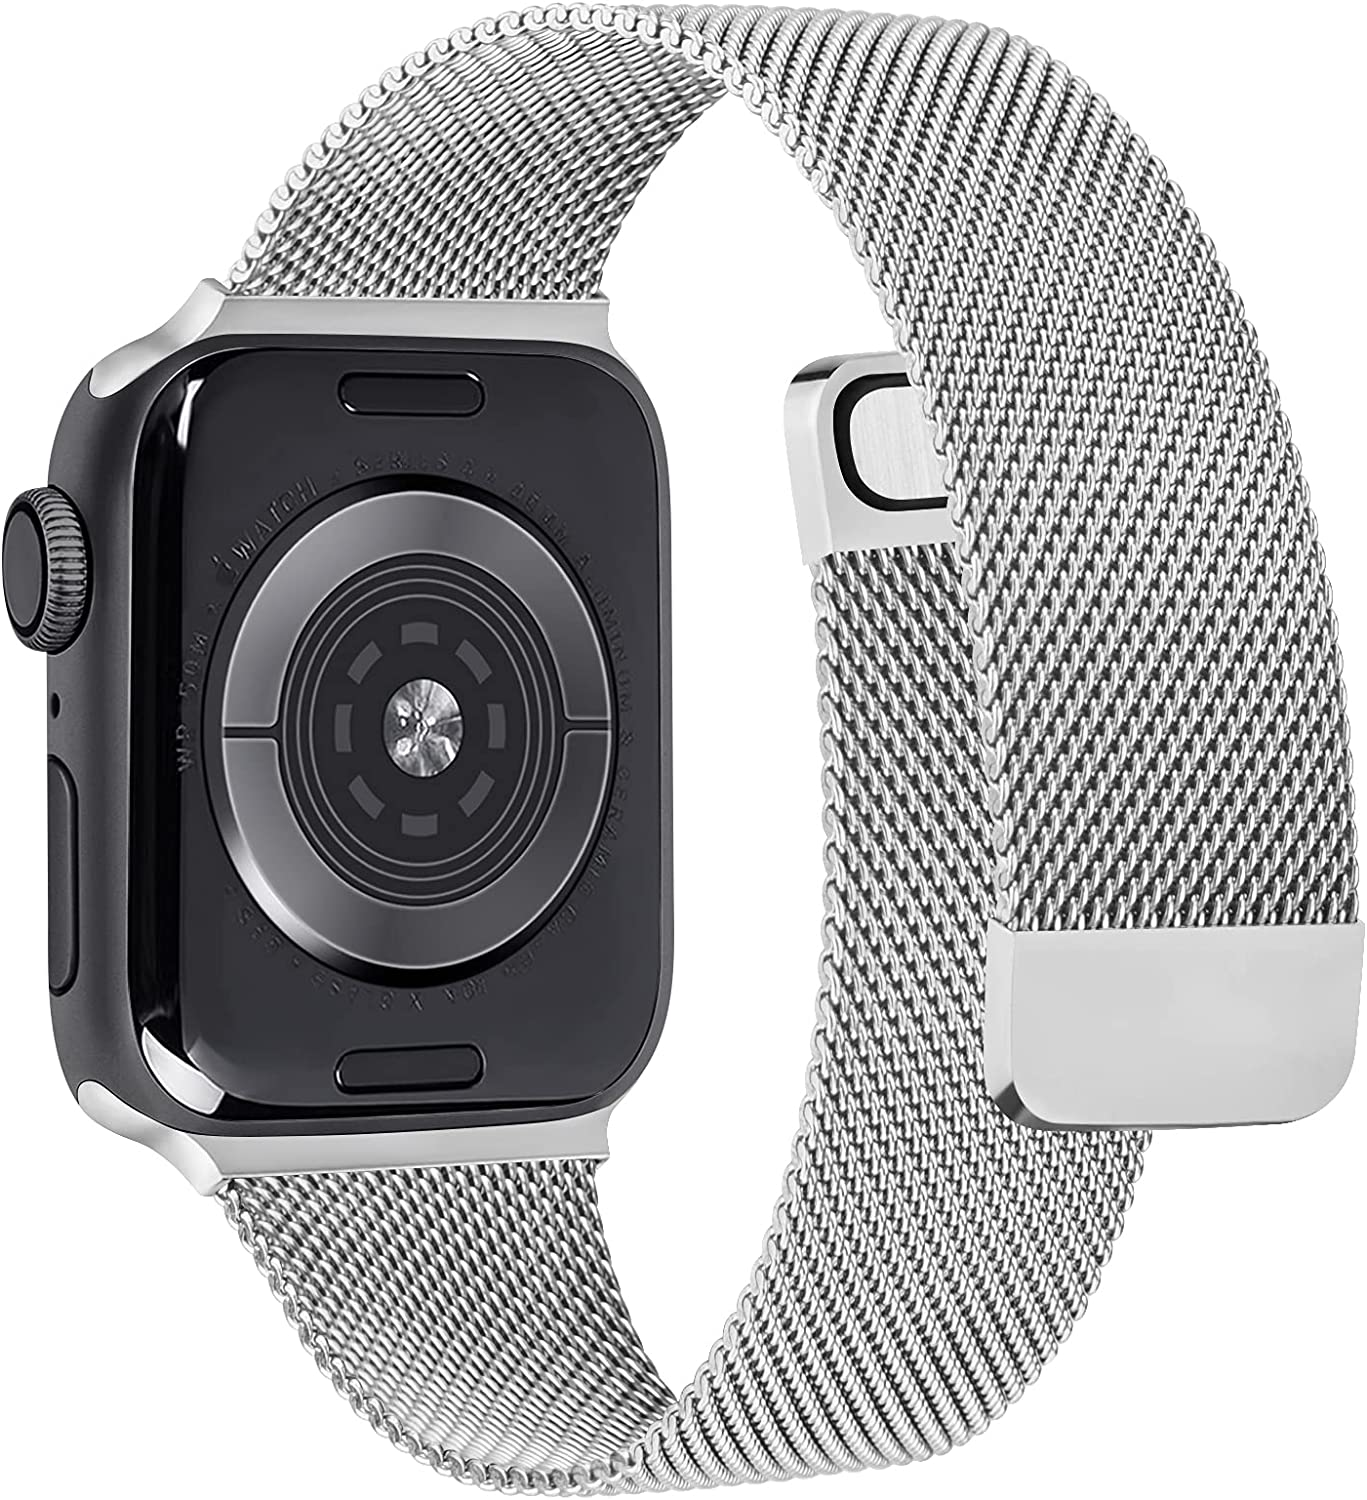 Wanme Bands Compatible with Apple Watch band 40mm 44mm 38mm 42mm , Magnetic Stainless Steel Mesh Adjustable Replacement Band for iWatch Series 6 5 4 3 2 1 SE for Women Men